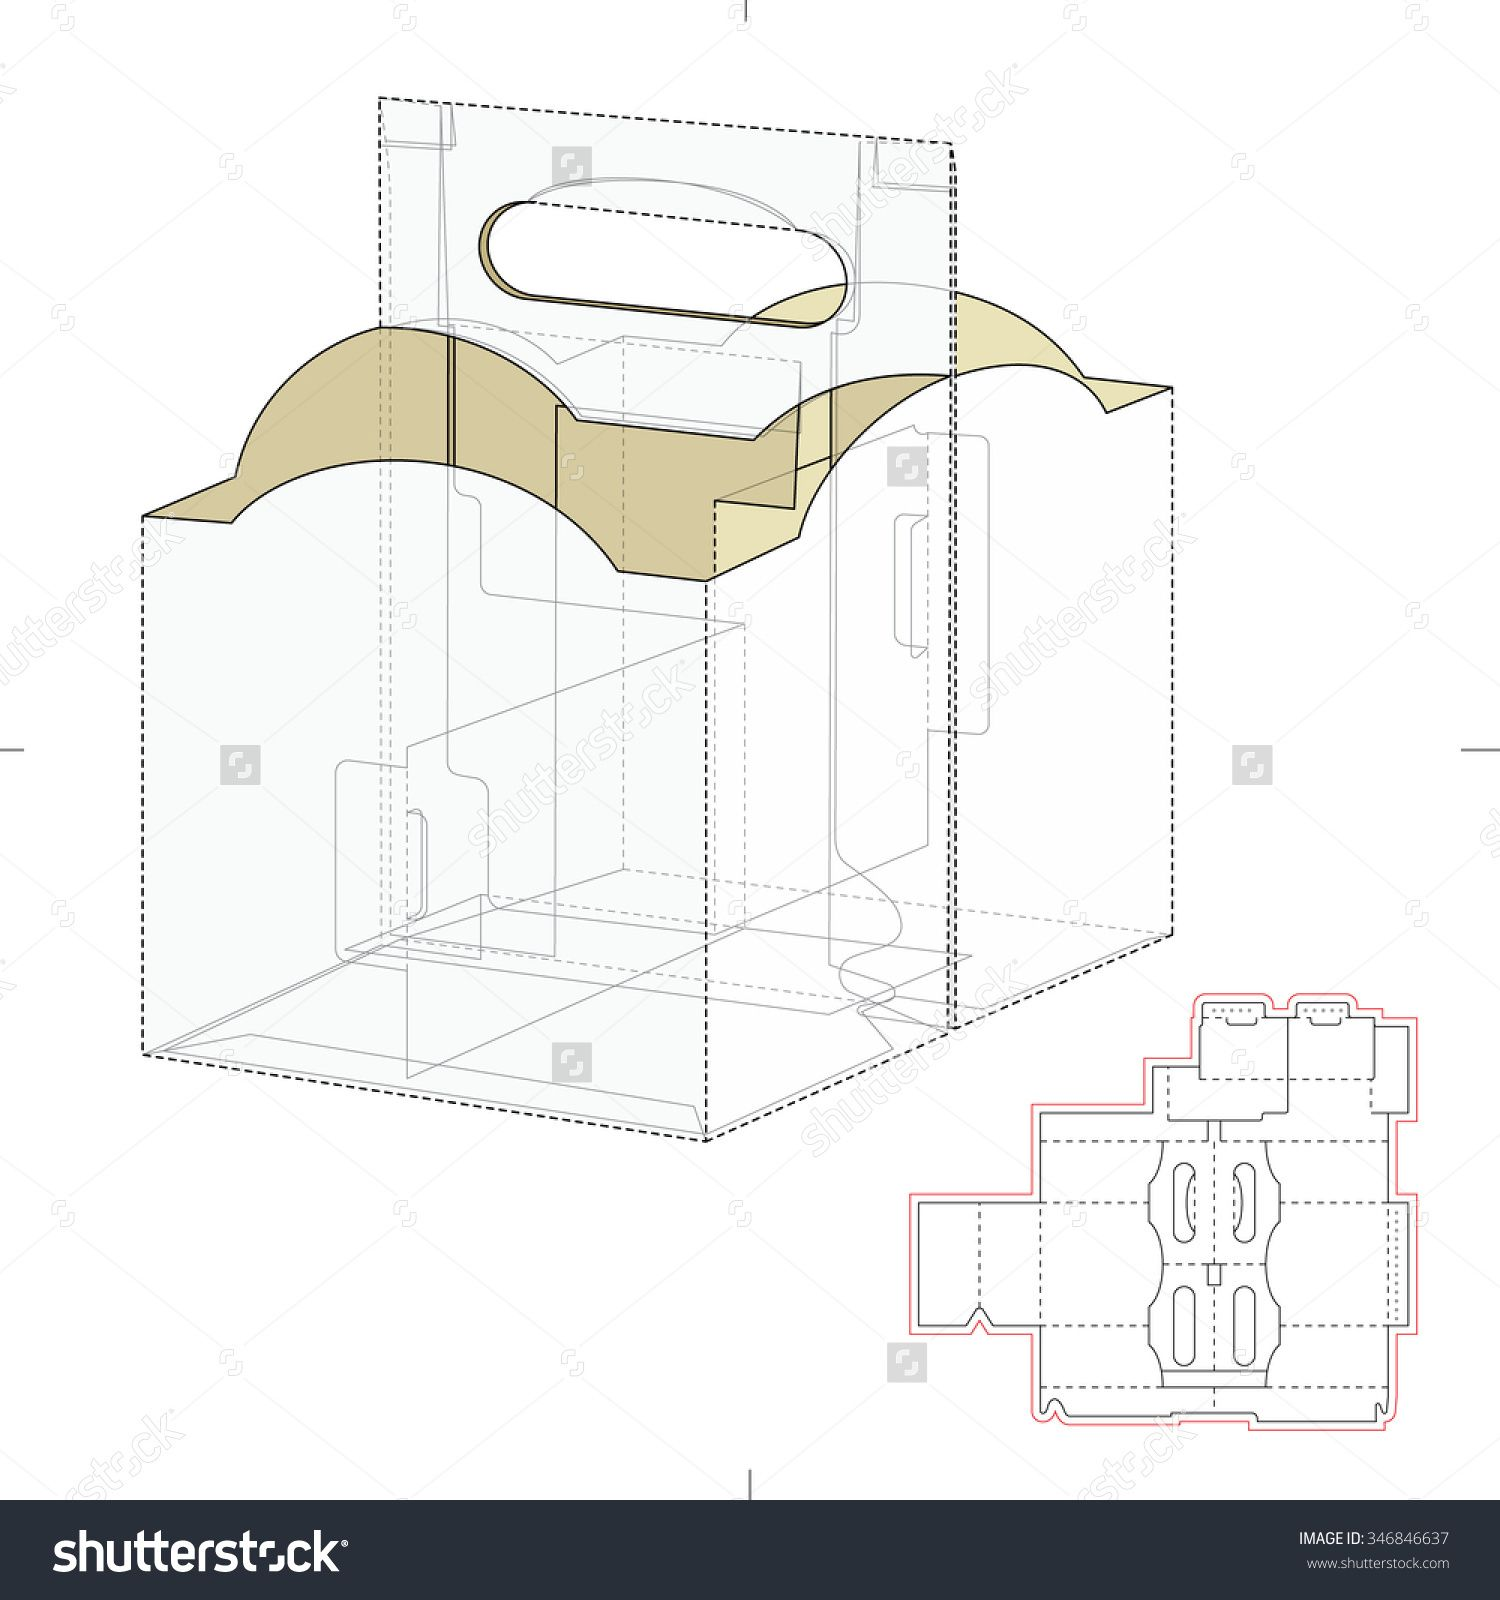 Empty Box Carrier With Dividers And Die Cut Template Stock Vector Illustration 346846637 : Shutterstock